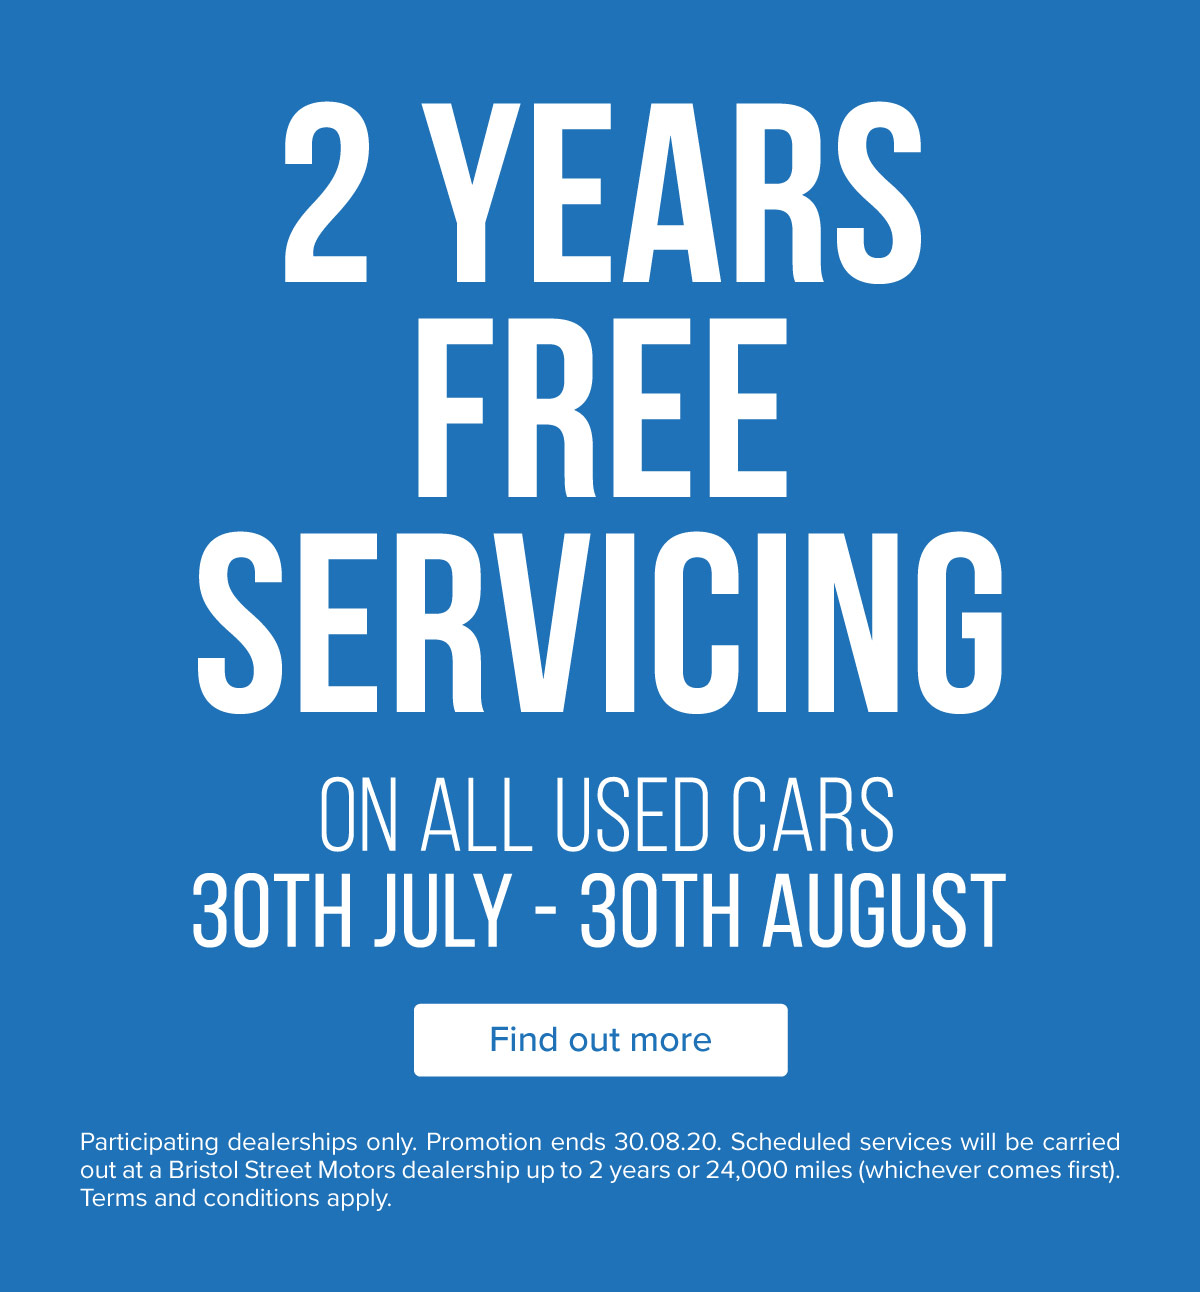 BSM 2 Years Free Servicing 300720